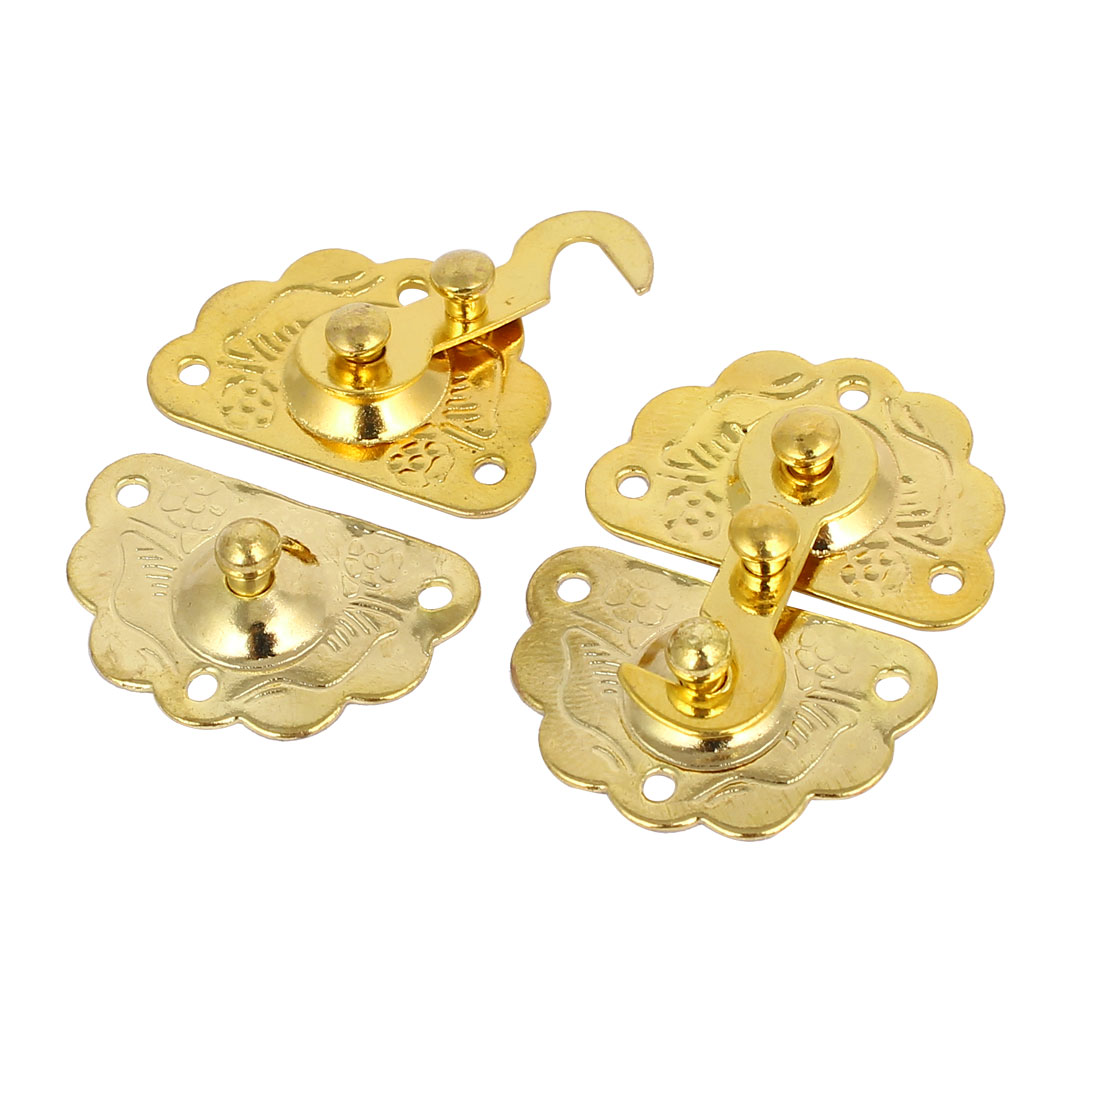 Chest Gift Box Case Lock Buckle Latches Toggle Hasp Gold Tone 2PCS